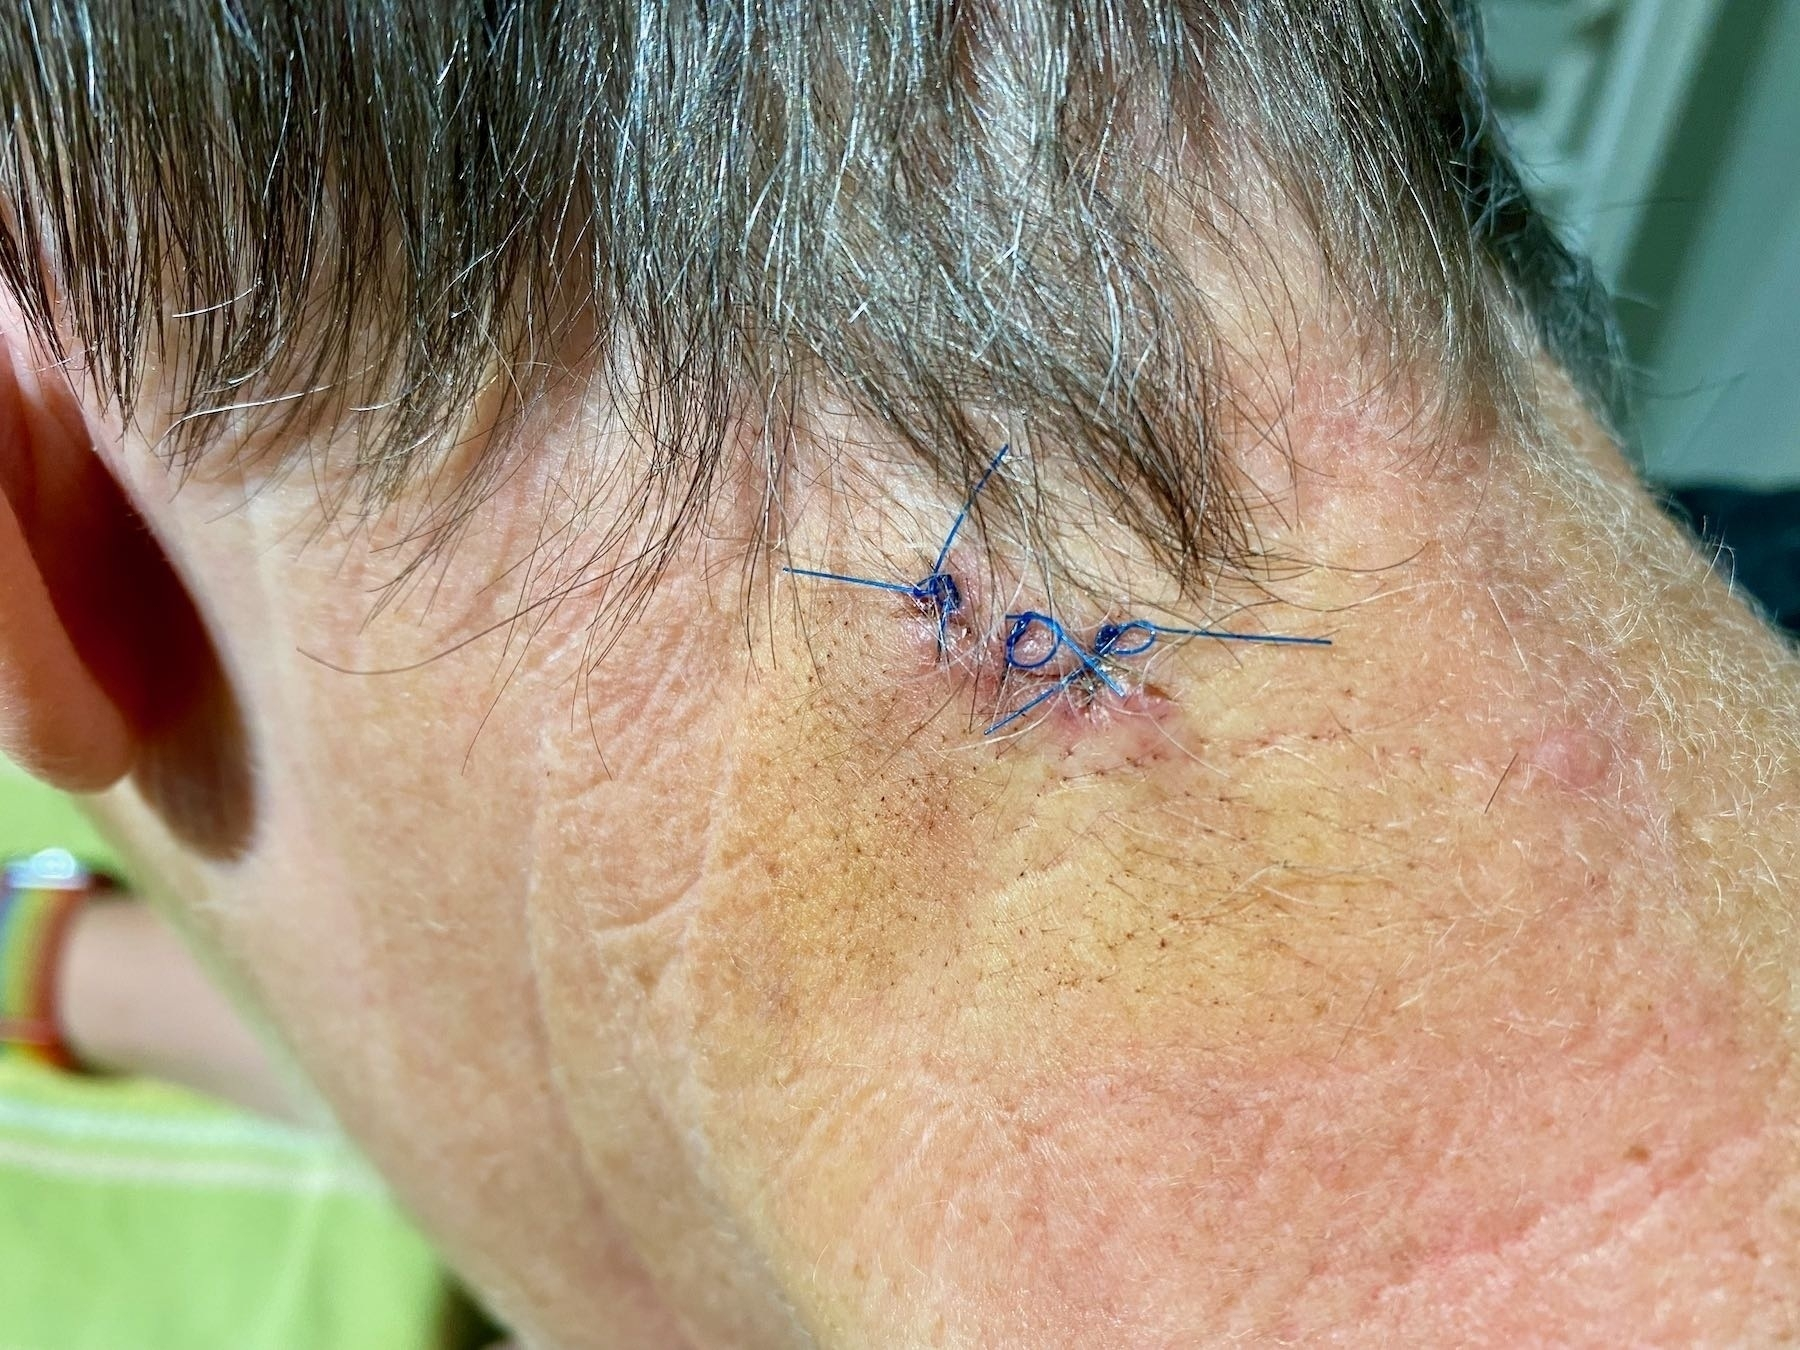 Stitches in a small wound.